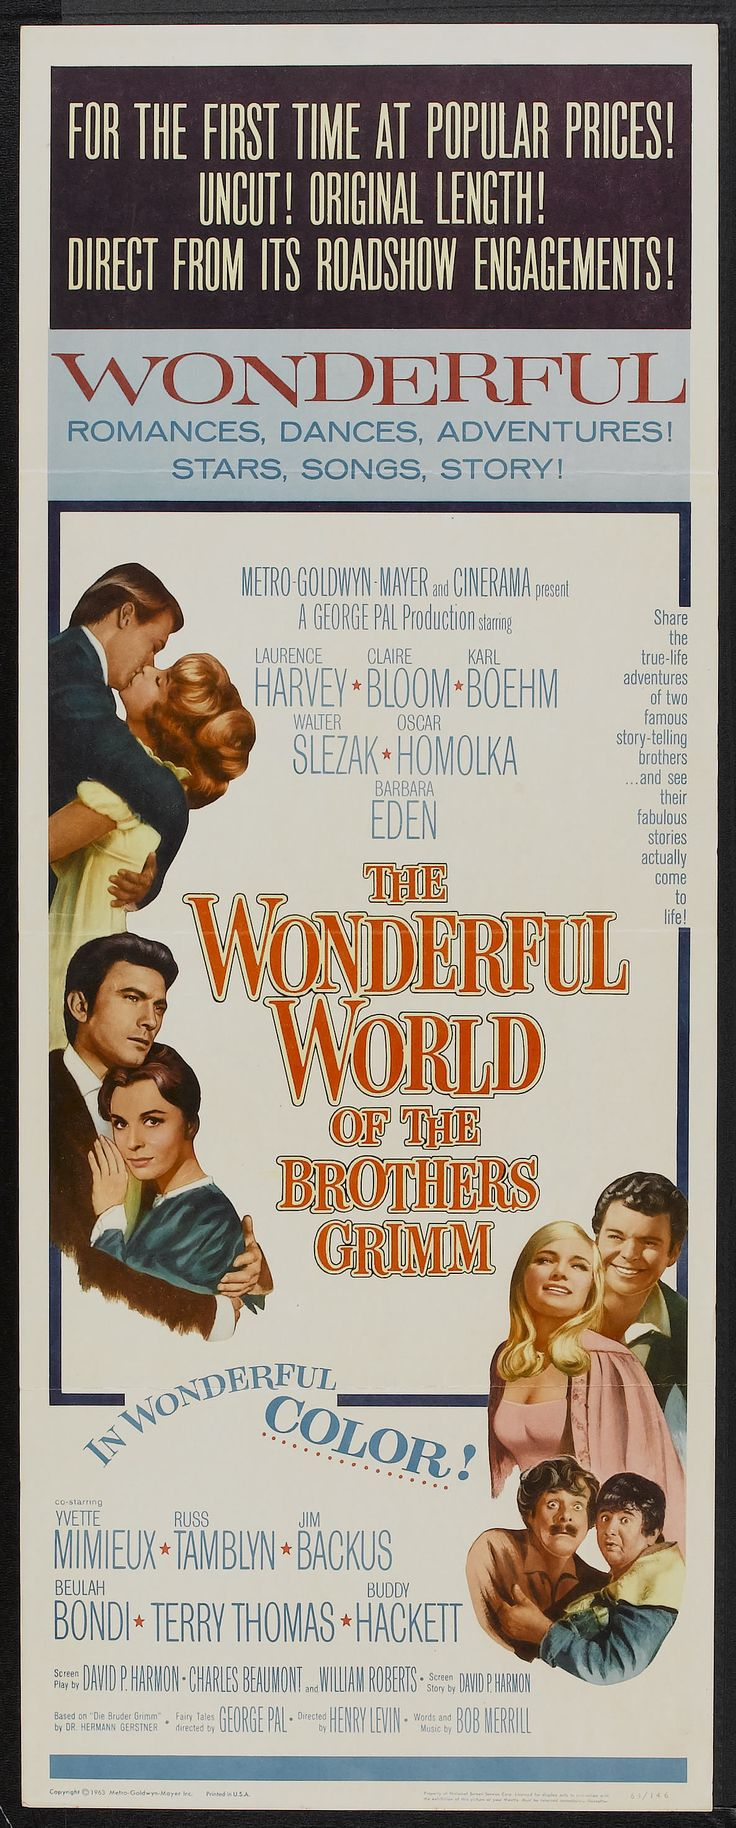 The Wonderful World of the Brothers Grimm (1962) Stars: Laurence Harvey, Claire Bloom, Karlheinz Böhm, Walter Slezak, Barbara Eden, Yvette Mimieux, Jim Backus, 	Russ Tamblyn, Terry-Thomas, Buddy Hackett ~ Directors: Henry Levin, George Pal (Nominated for 4 Oscars that included a win for Best Costume Design, Color; Nominated for 2 Golden Globes 1963)